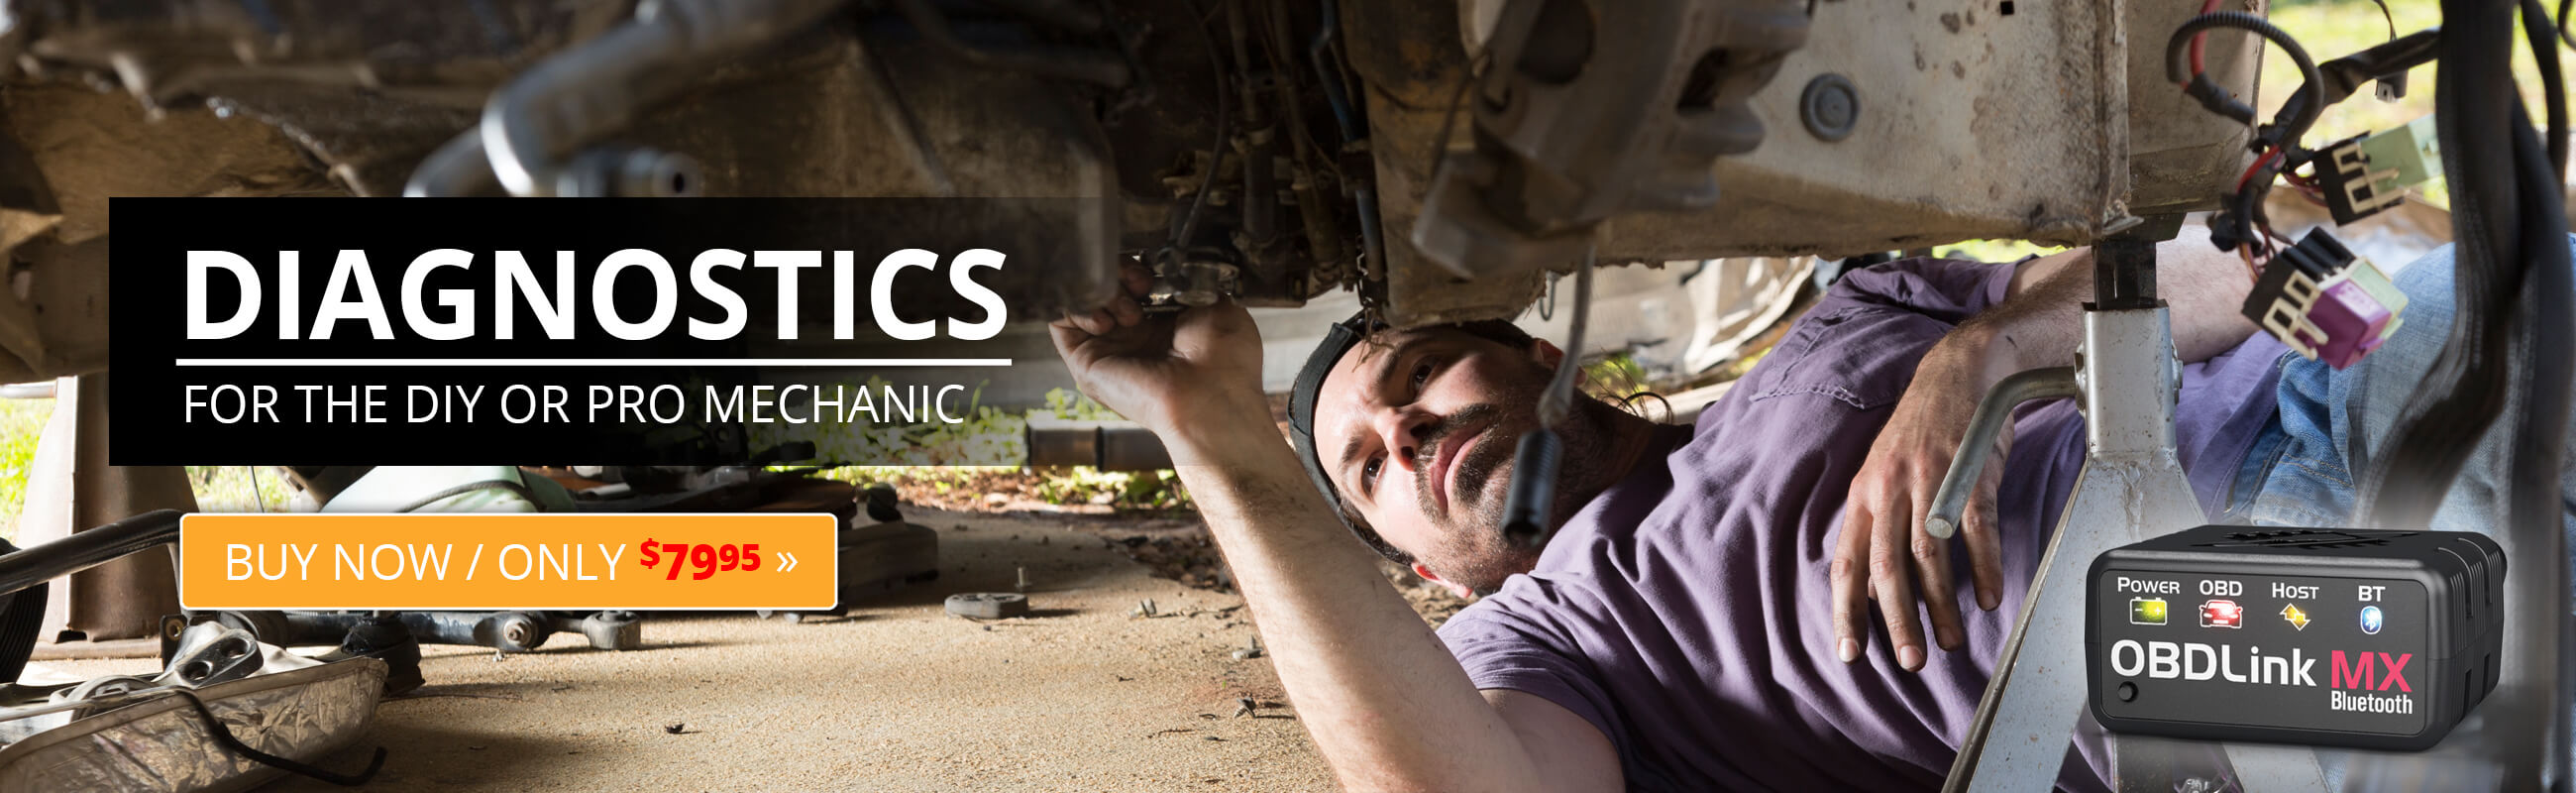 MX Bluetooth - for the DIY mechanic - Buy Now